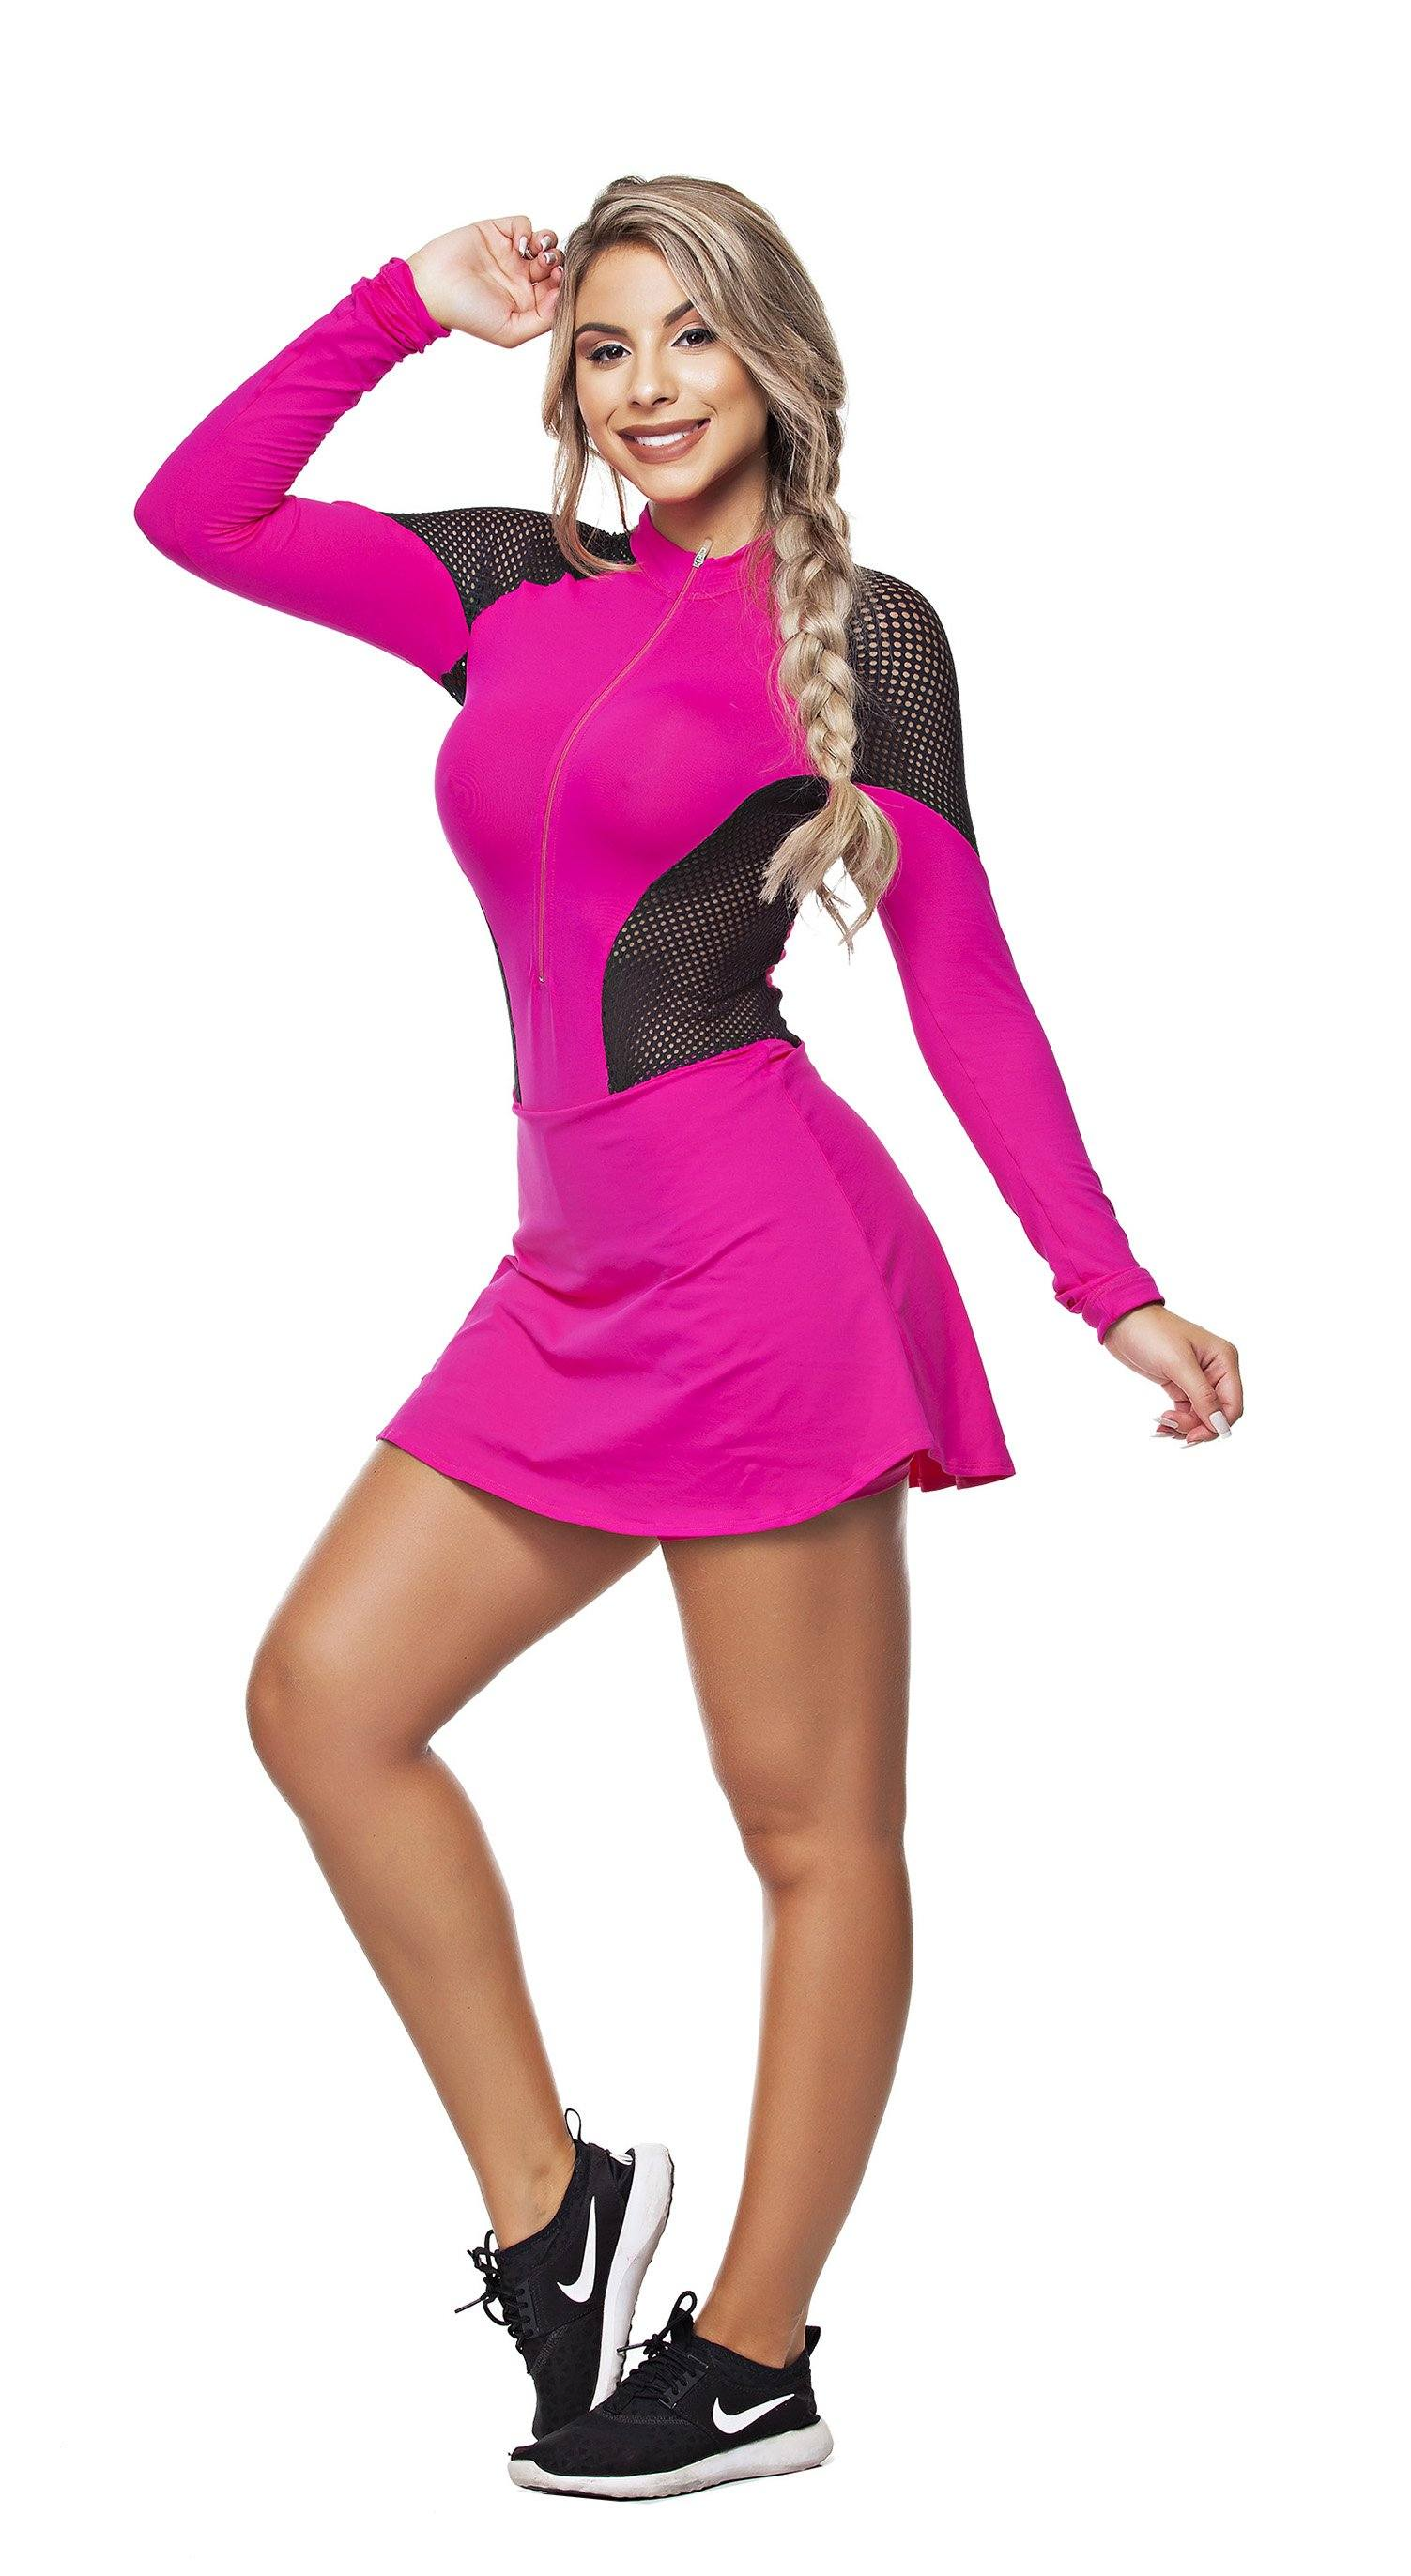 Cycling Jumpsuit - Triathlon Tri Suit Skirt Overlay Pink & Black